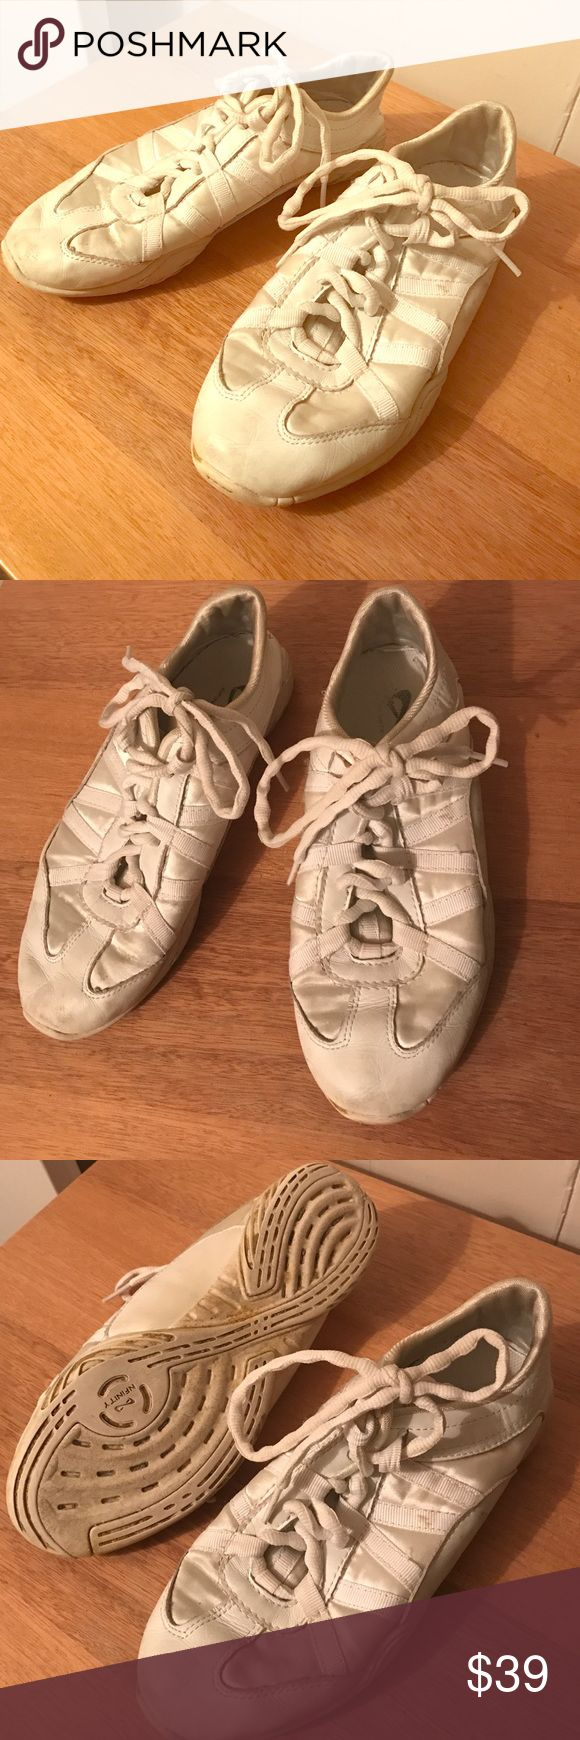 Nfinity cheer shoes Nfinity evolution cheer shoes🎉 Good condition, broken in, and super comfortable! Size 8. Clean and lightly used! Make an offer💓💰 Nfinity Shoes Athletic Shoes